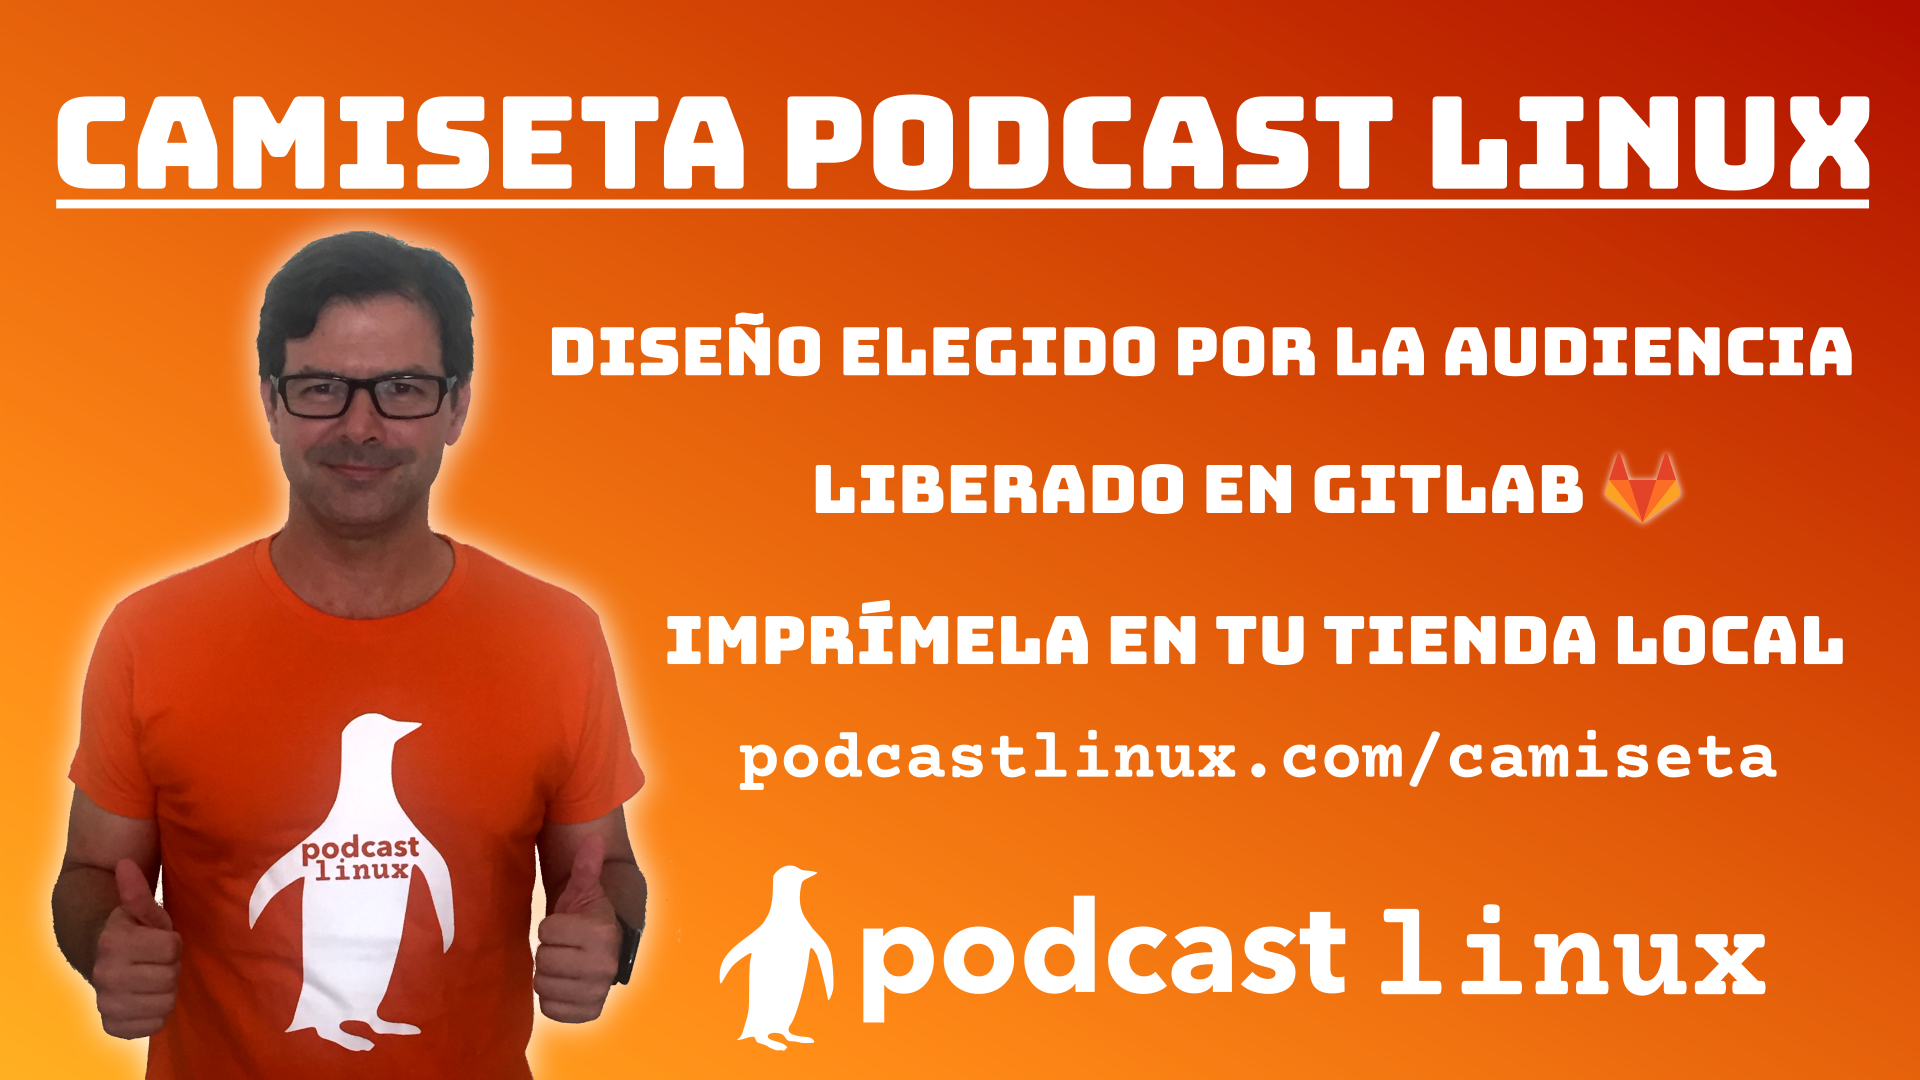 Camiseta Podcast Linux